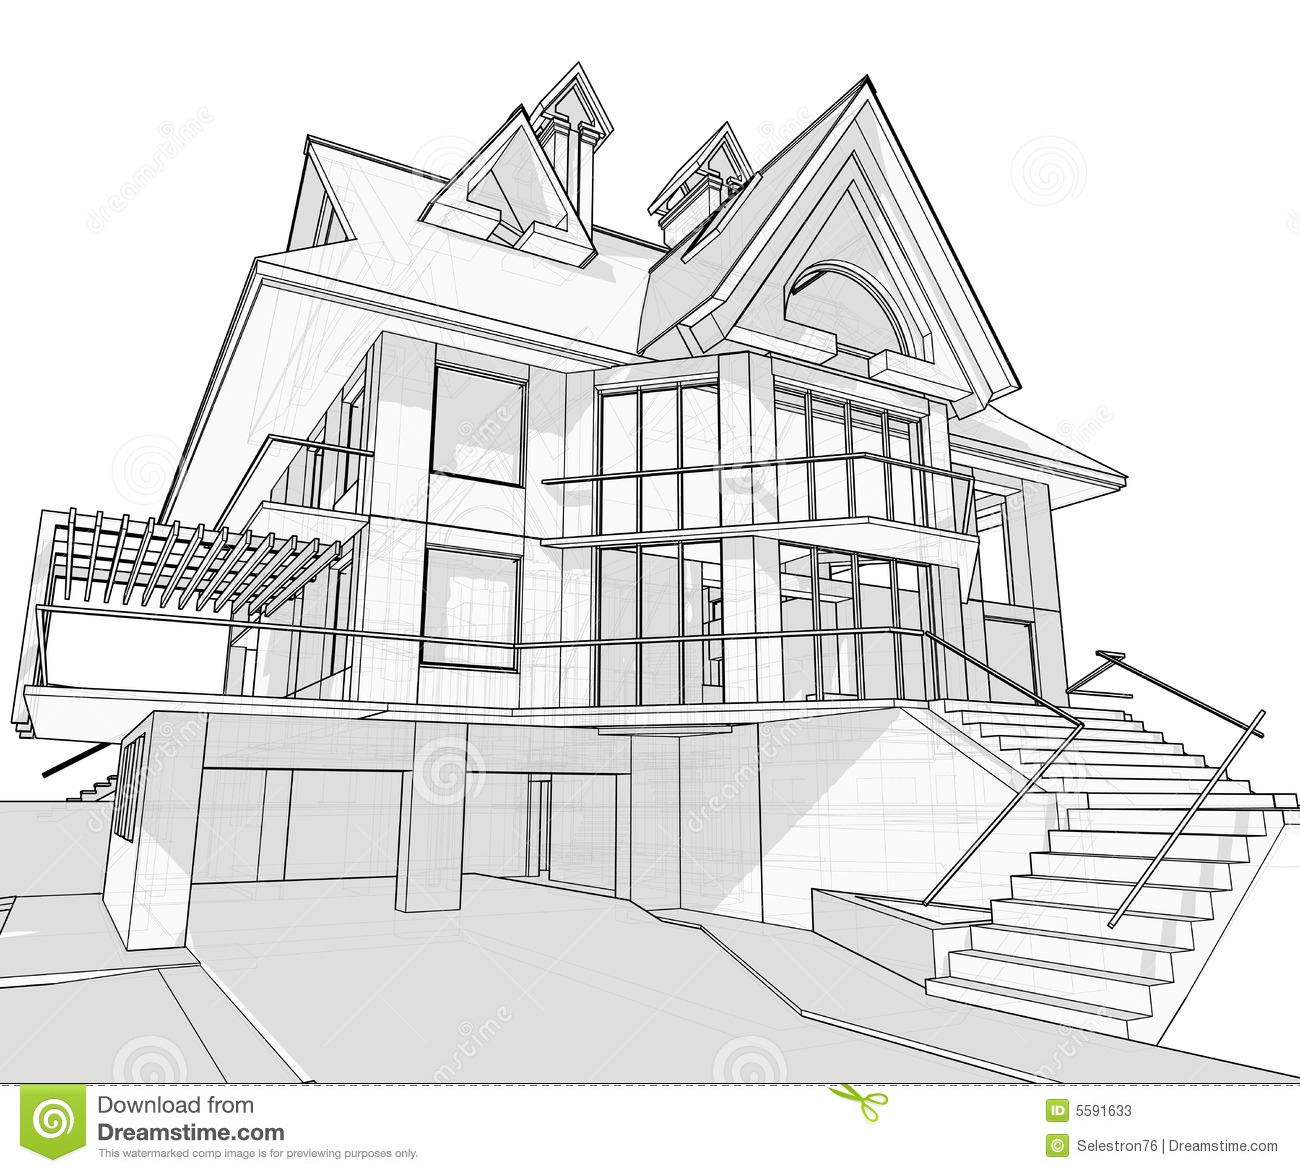 House architecture blueprint stock vector illustration for How to draw house blueprints